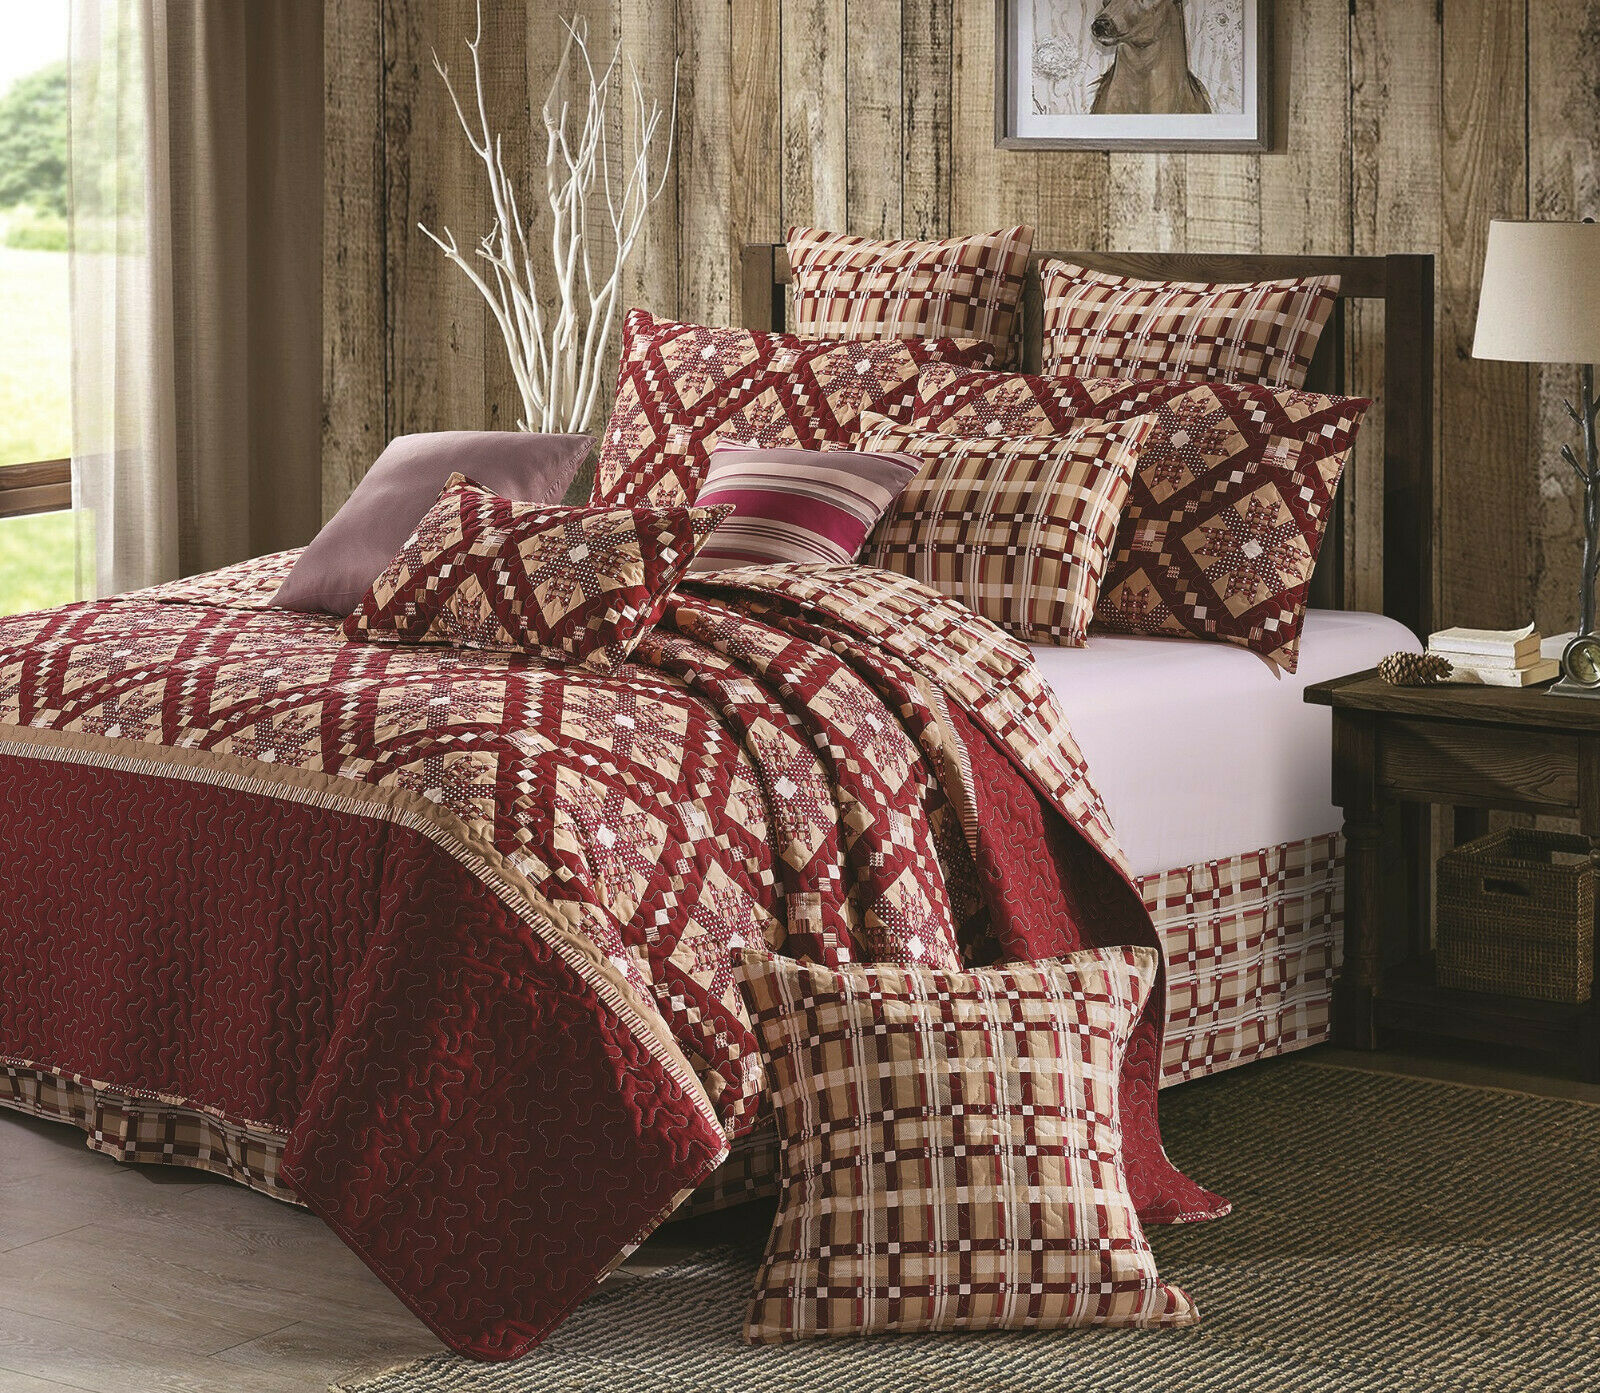 NINE PATCH STAR CRANBERRY rot 3pc König QUILT SET   COUNTRY FARMHOUSE STARBURST